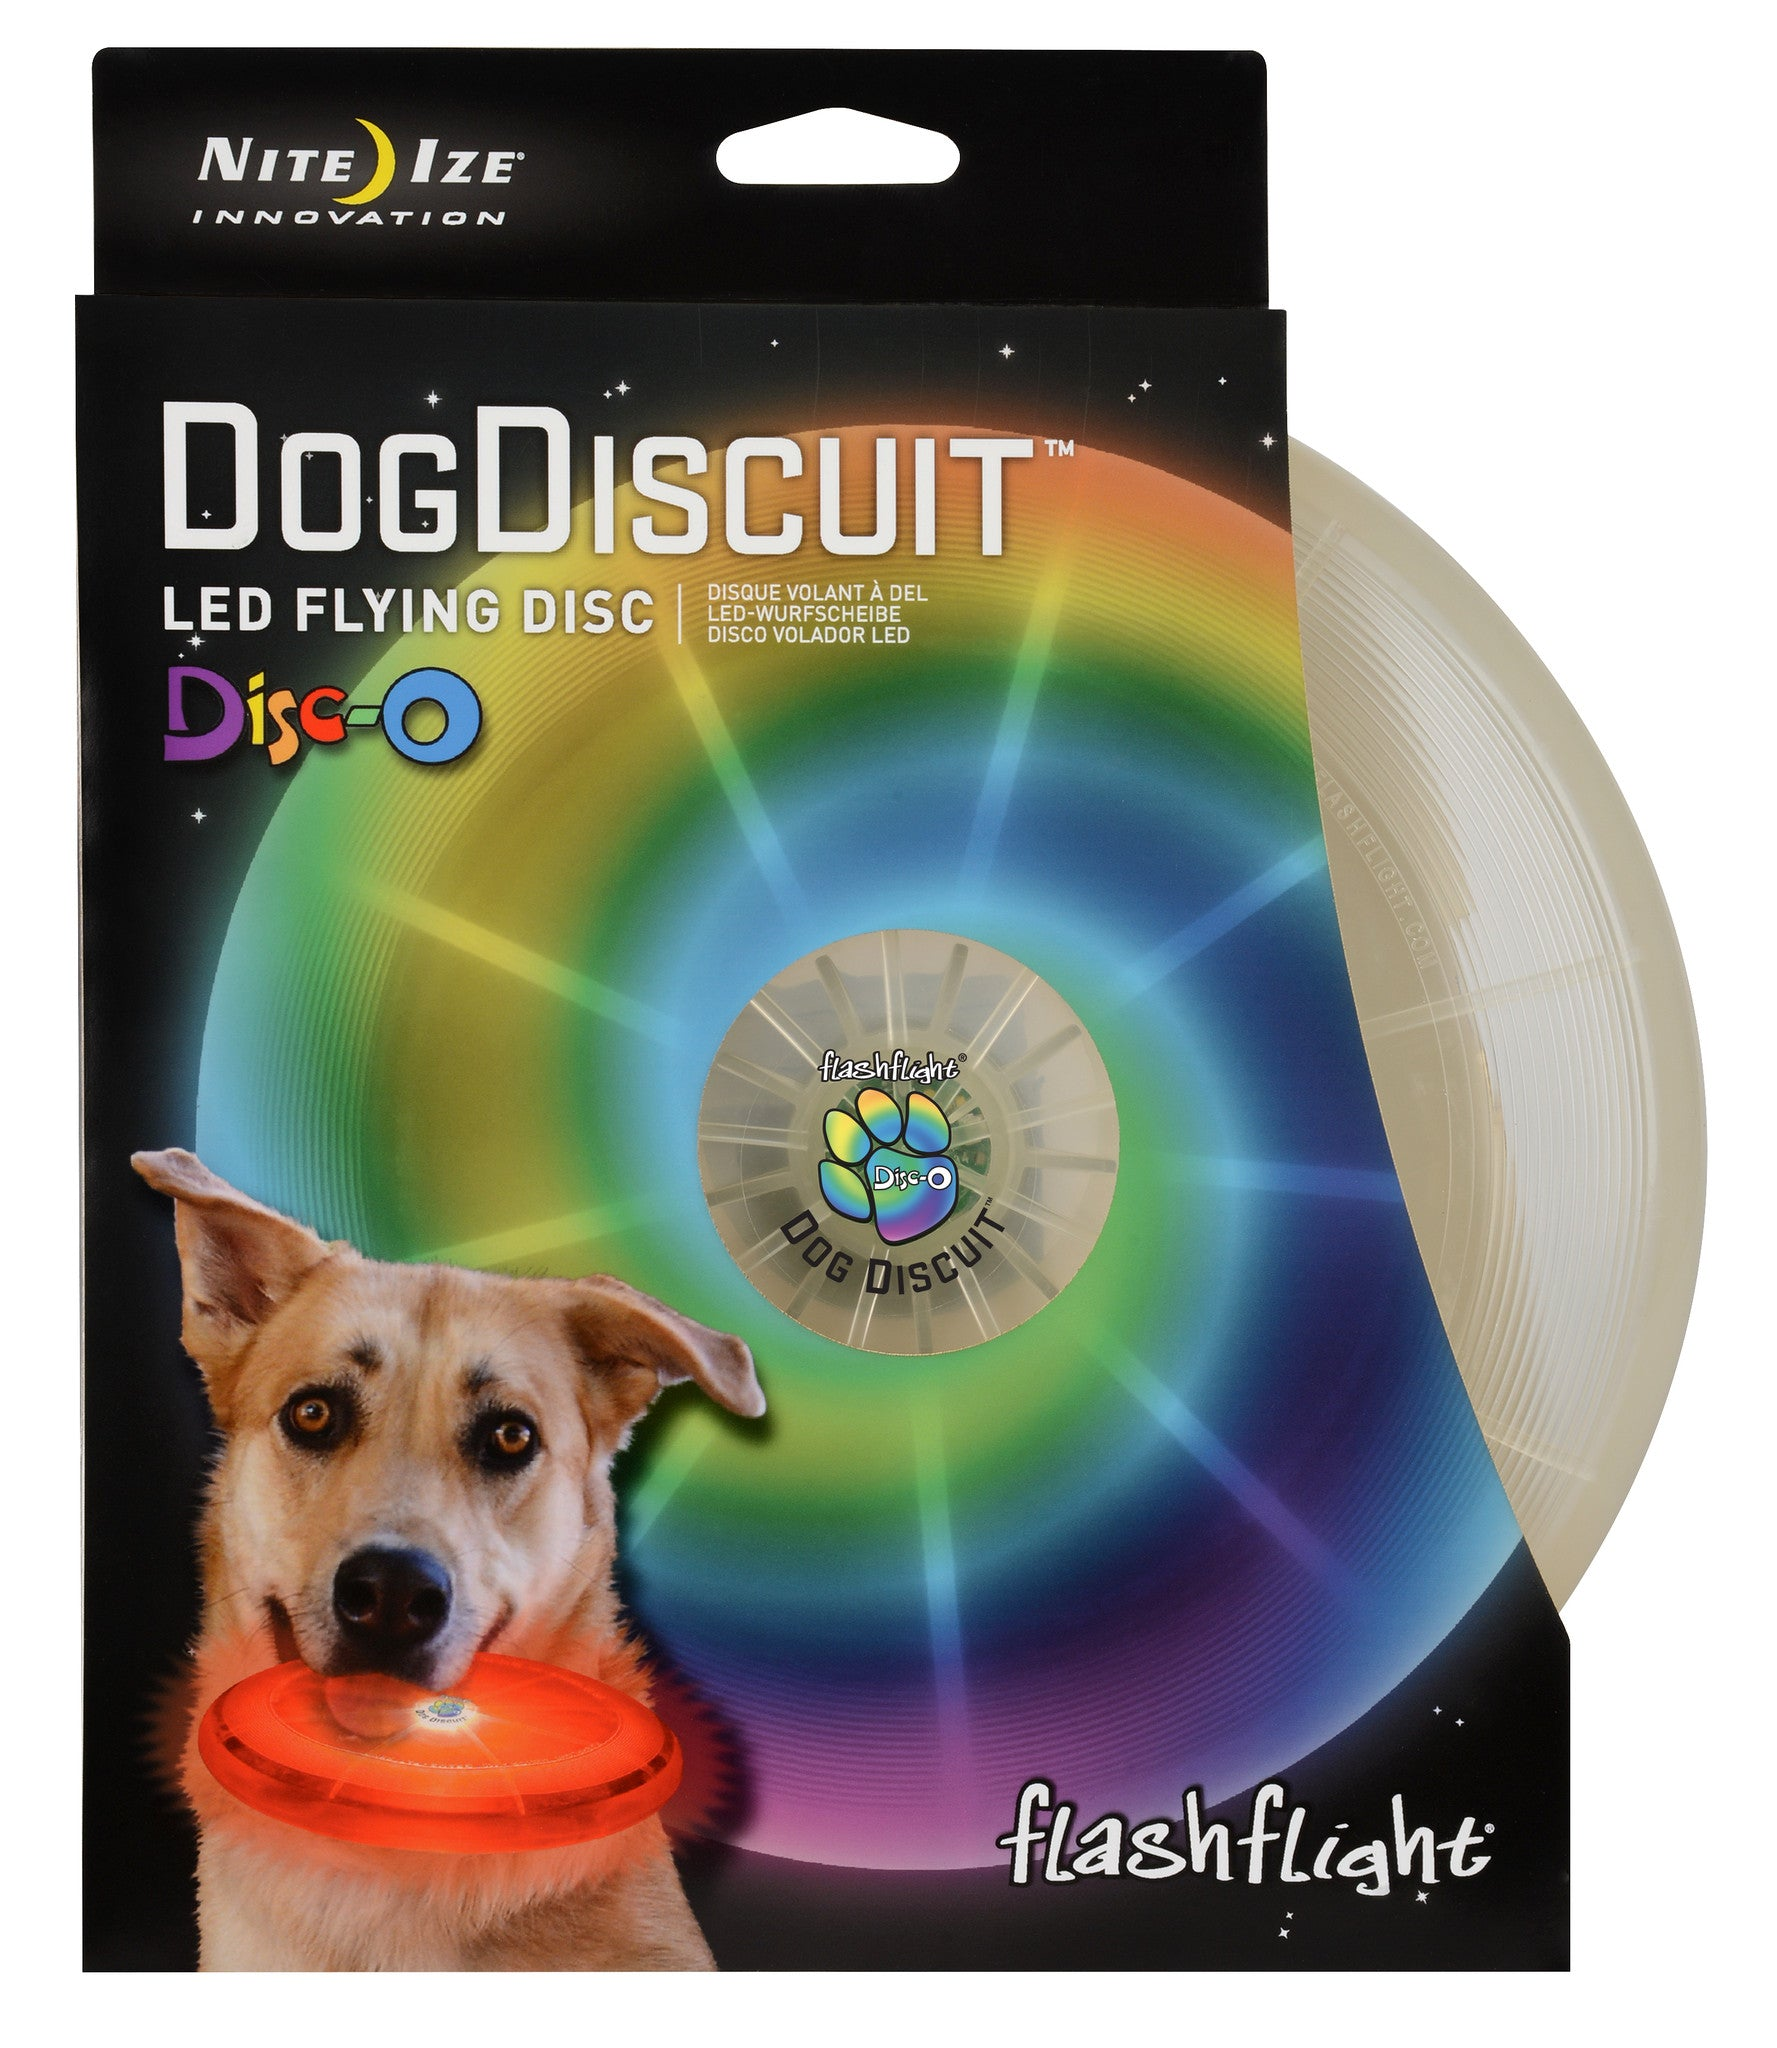 Dog Discuit LED Flying Disc - Flashflight.com - 3